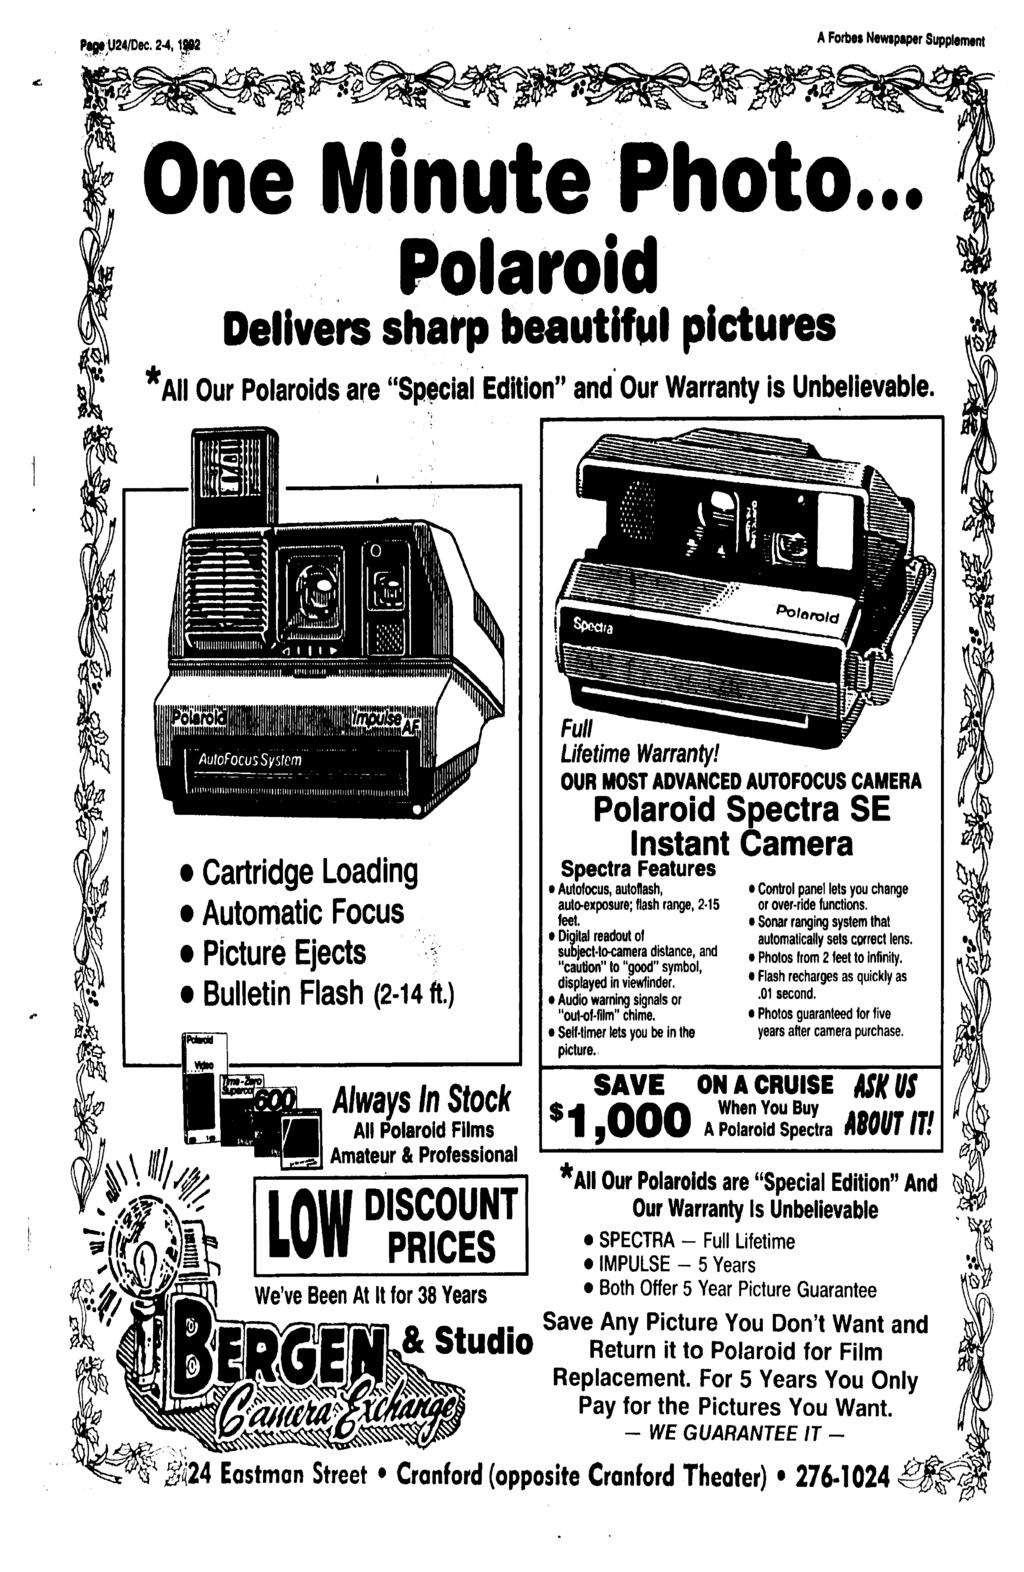 "Ptpt;U24/Dec. 2-4 3-7 A Forbes Newspaper Supplement One Minute Photo... Polaroid Delivers sharp beautiful pictures *AII Our Polaroids are ""Special Edition"" and Our Warranty is Unbelievable."